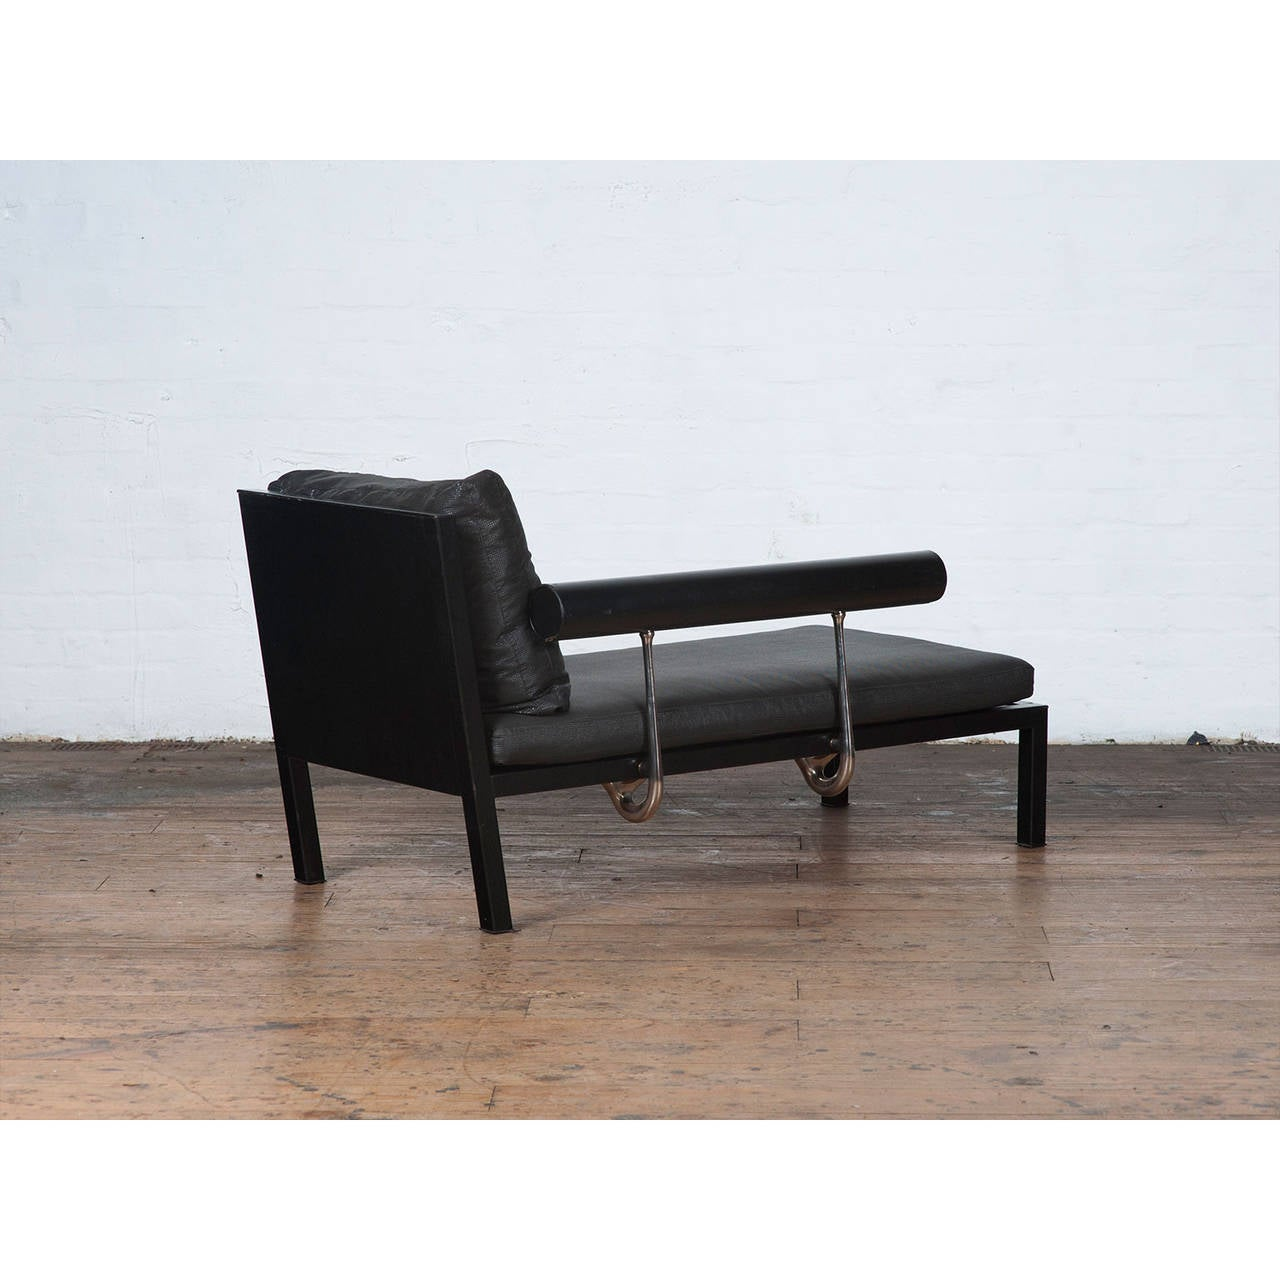 1980s black leather chaise longue by antonio citterio for for Chaise longue leather